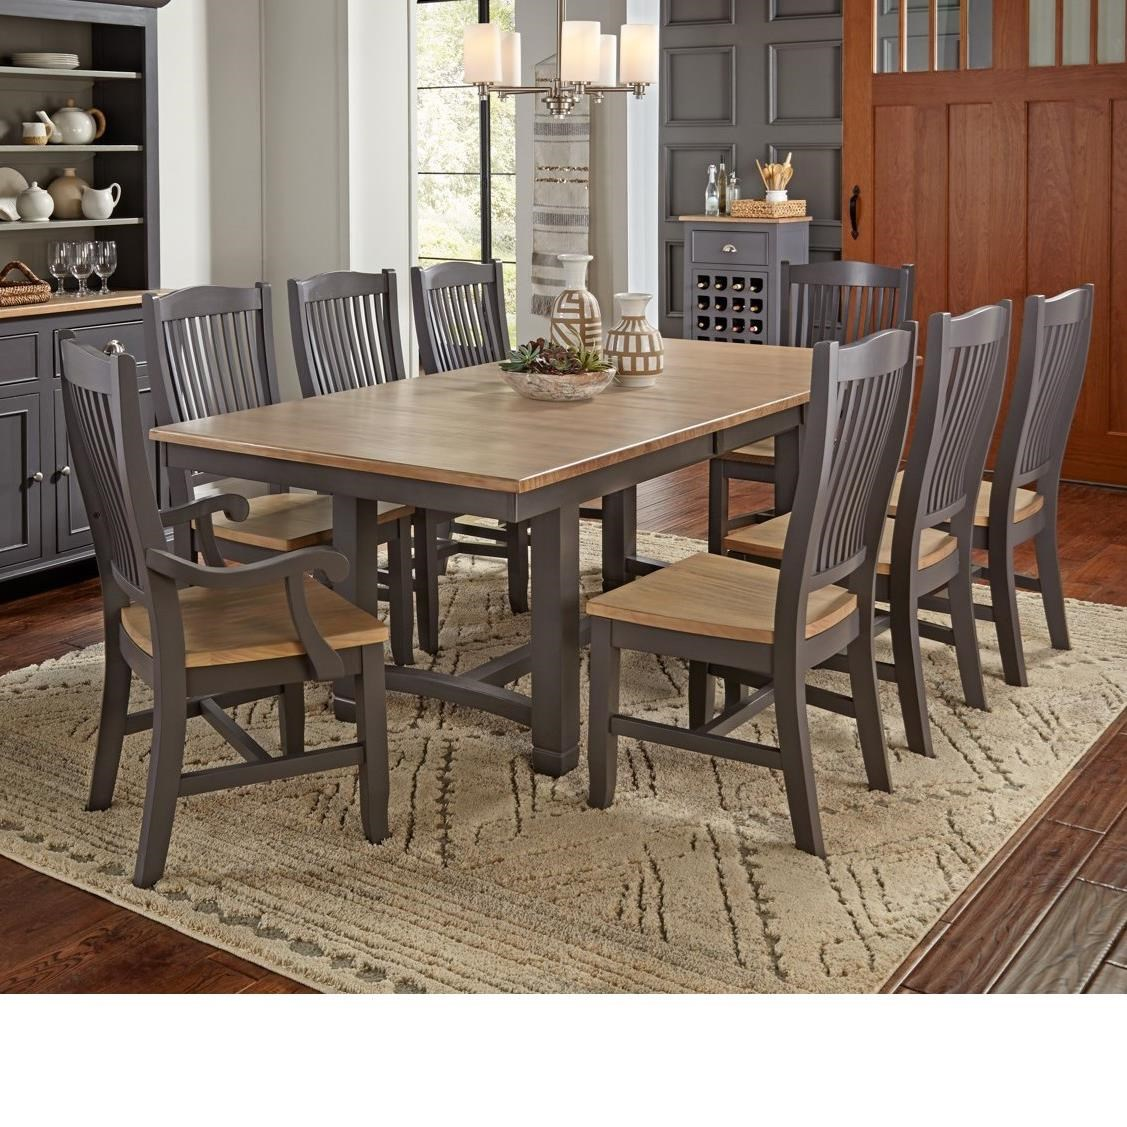 Port Townsend 5 Pc Table Set by AAmerica at Johnny Janosik